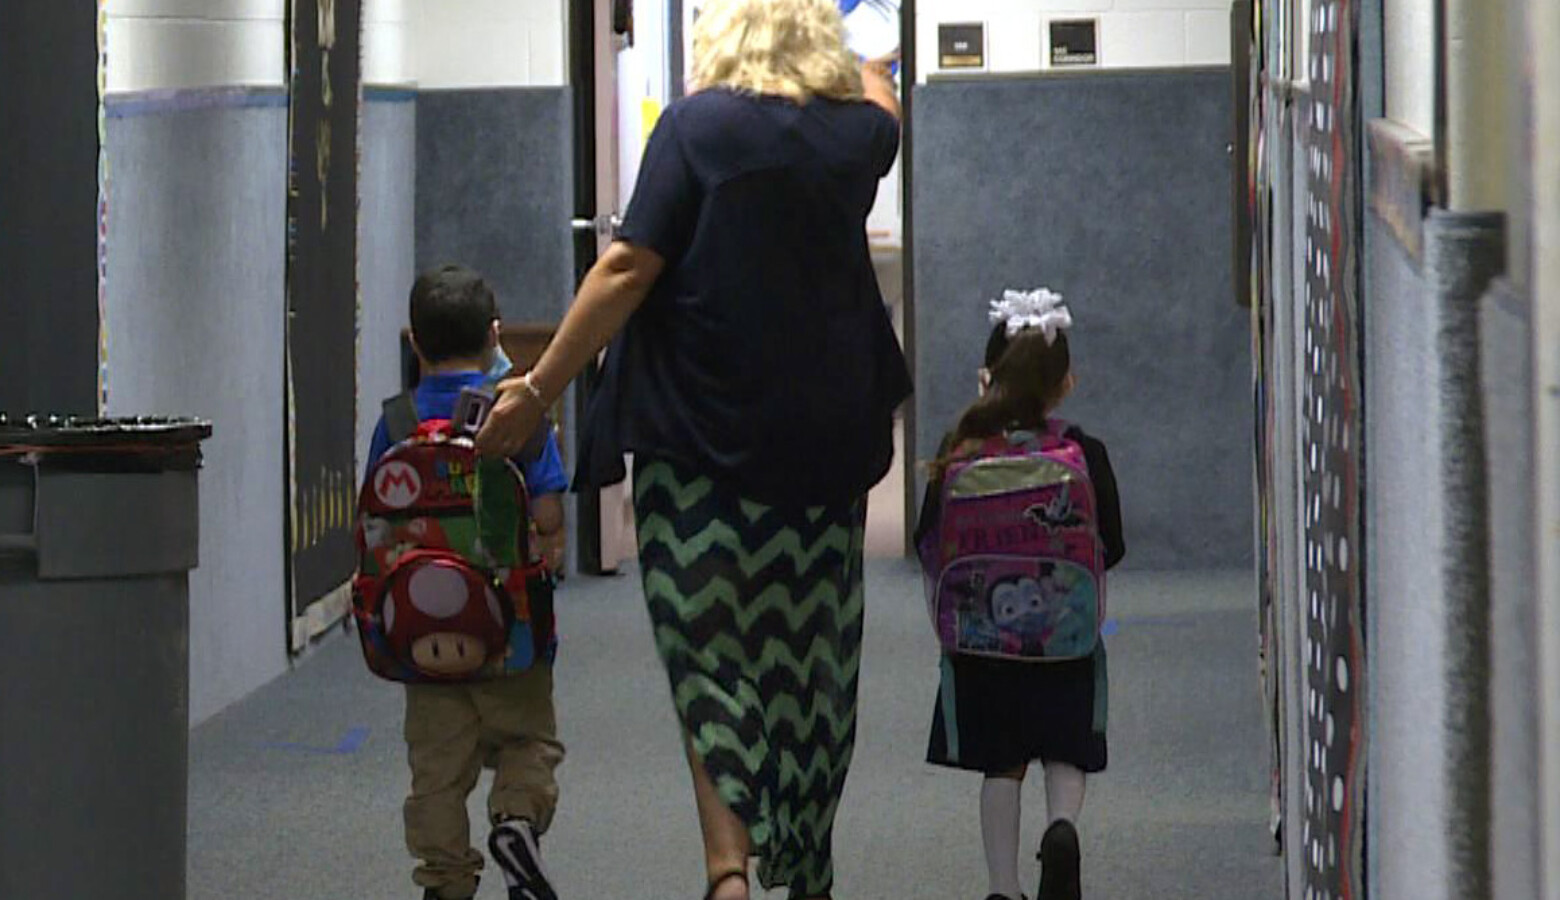 According to early findings from Indiana's academic impact study, the pandemic significantly affected elementary school students' progress in math, and more moderately in English/language arts. (Jeanie Lindsay/IPB News)